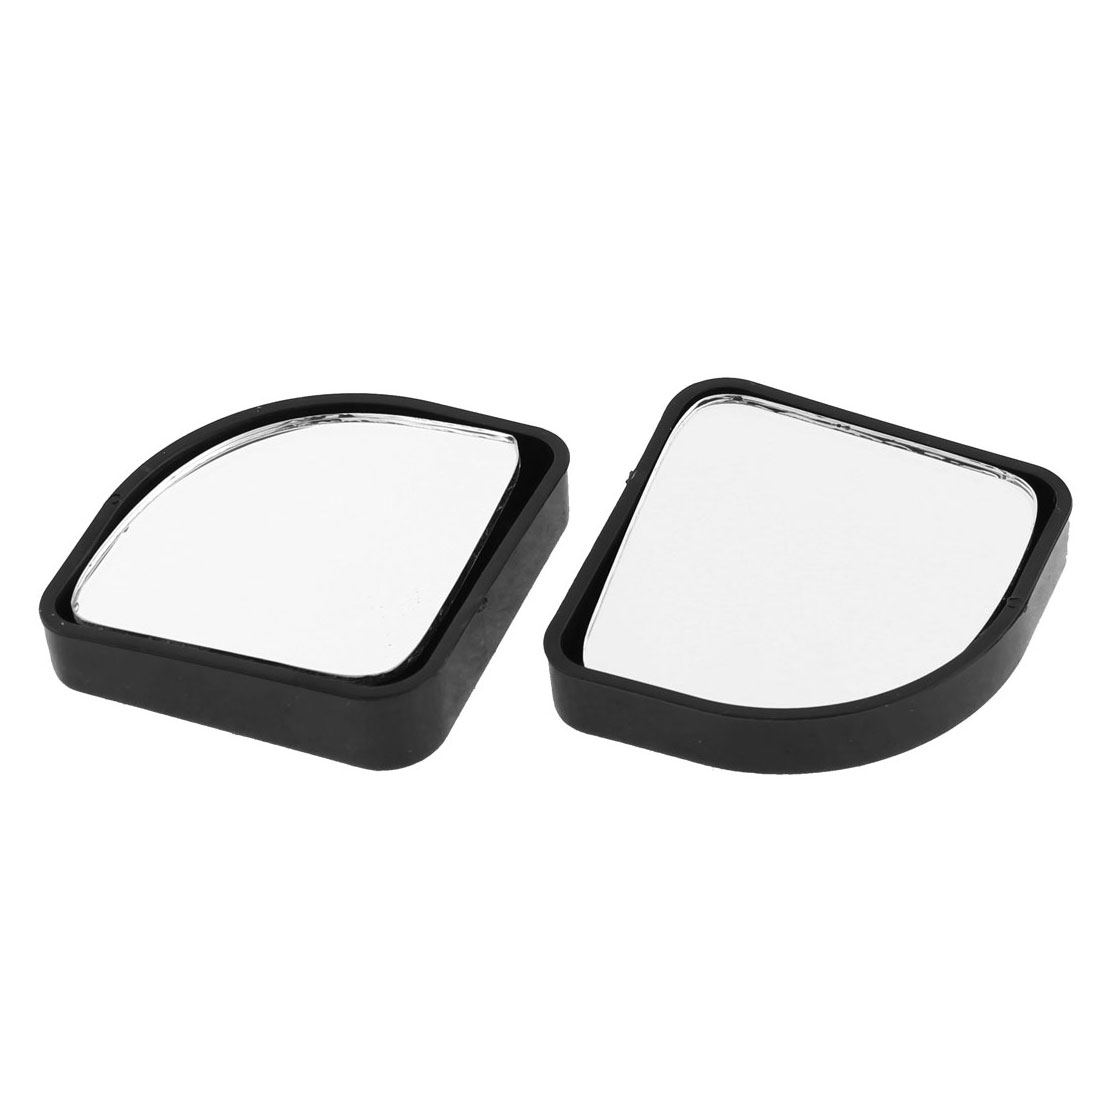 2Pcs Universal Self-adhesive Car Reverse Rear View Blind Spot Auxiliary Mirror